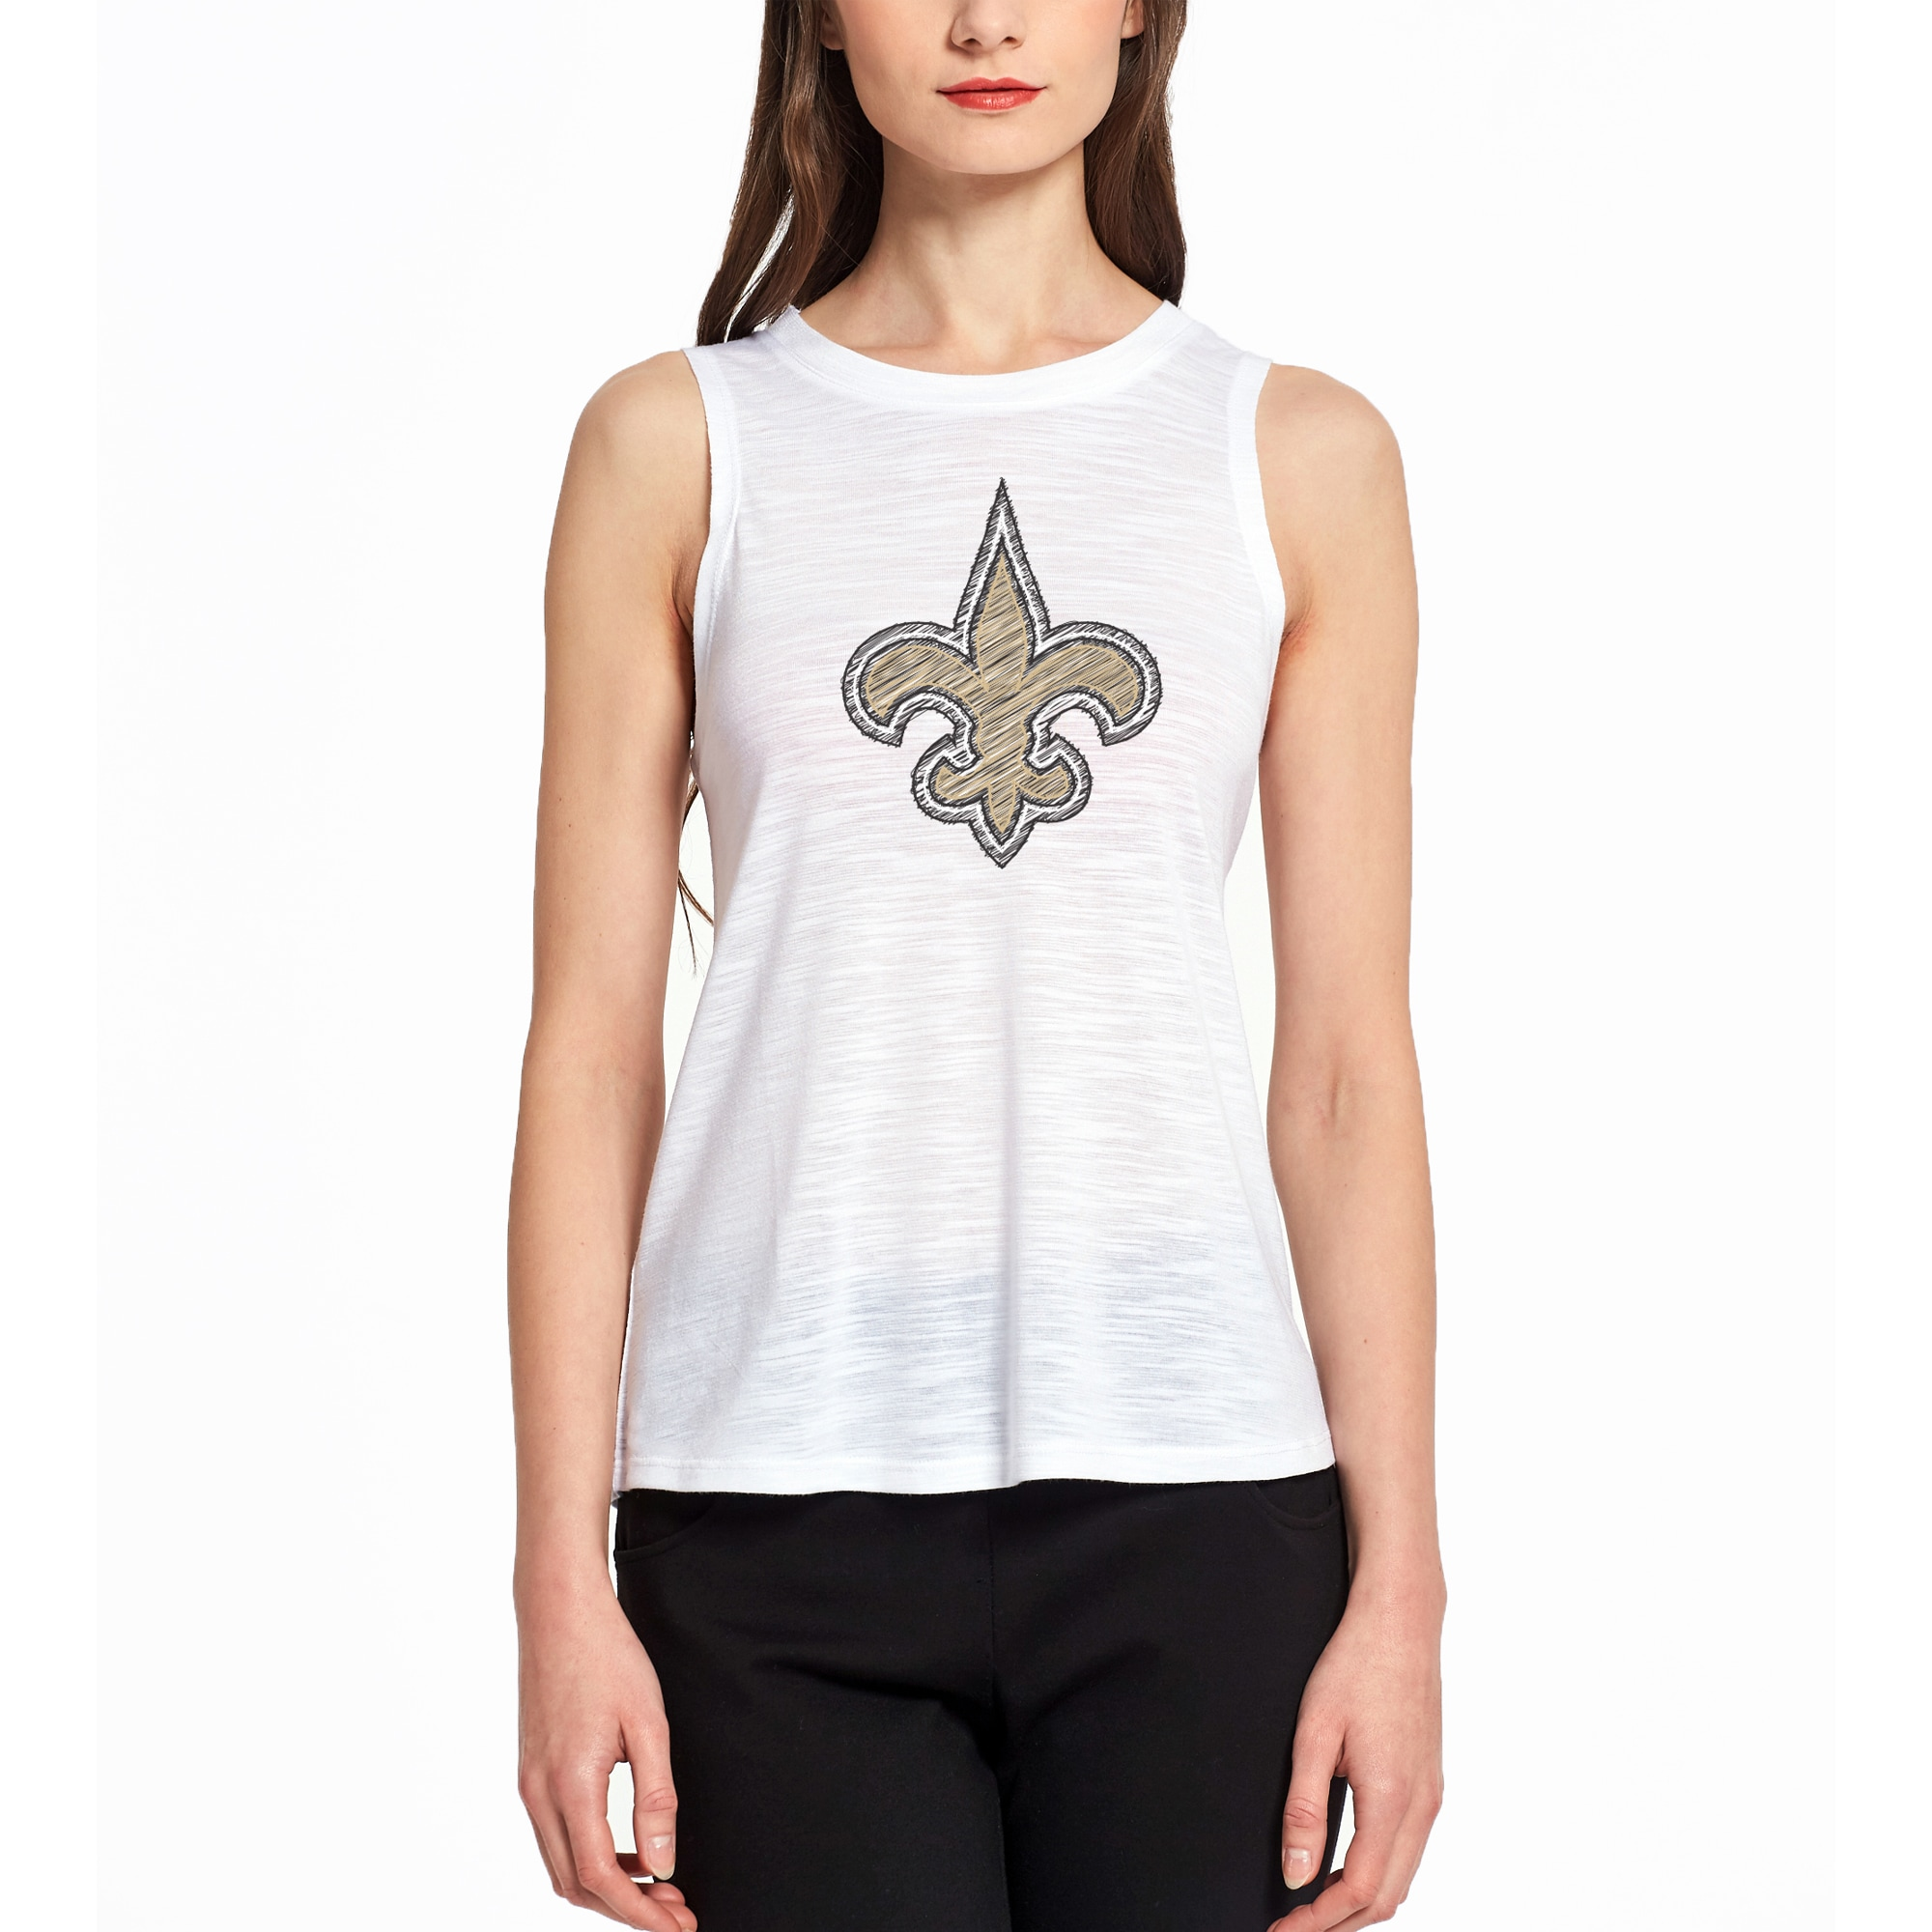 New Orleans Saints Concepts Sport Women's Infuse Knit Tank Top - White